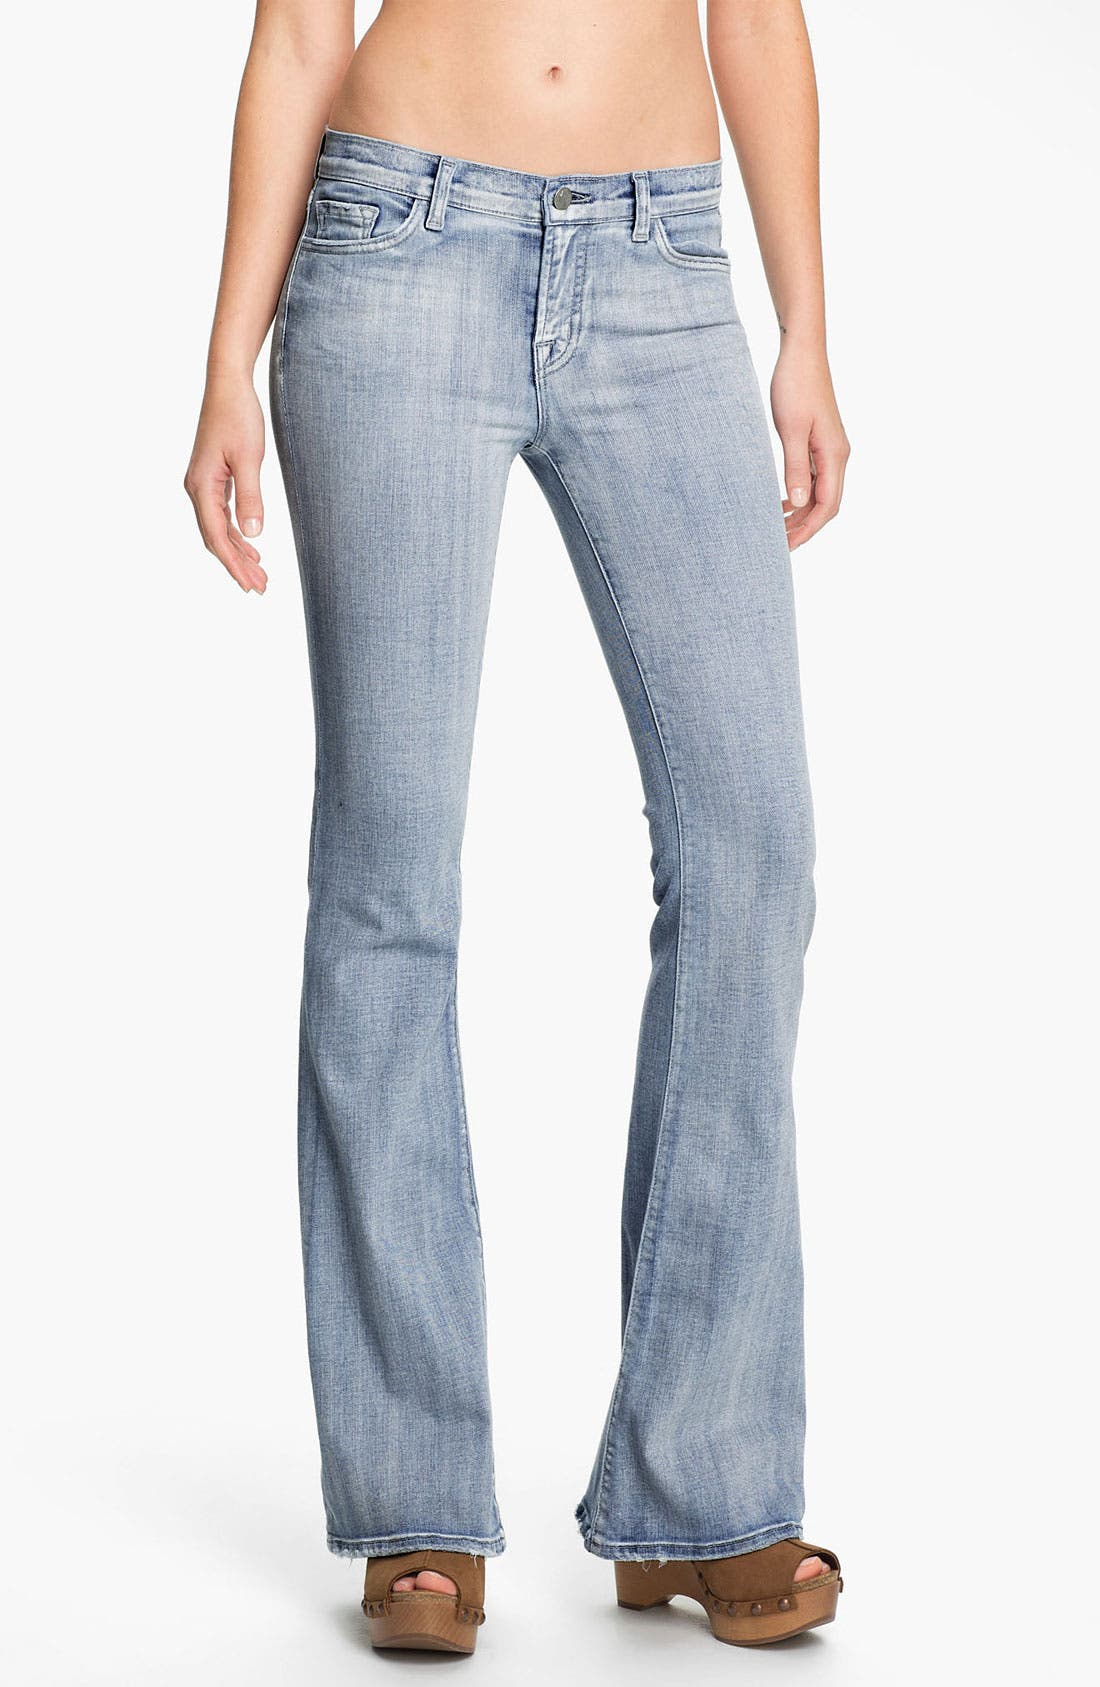 Alternate Image 1 Selected - J Brand 'Babe' Flare Leg Jeans (Afterlife)